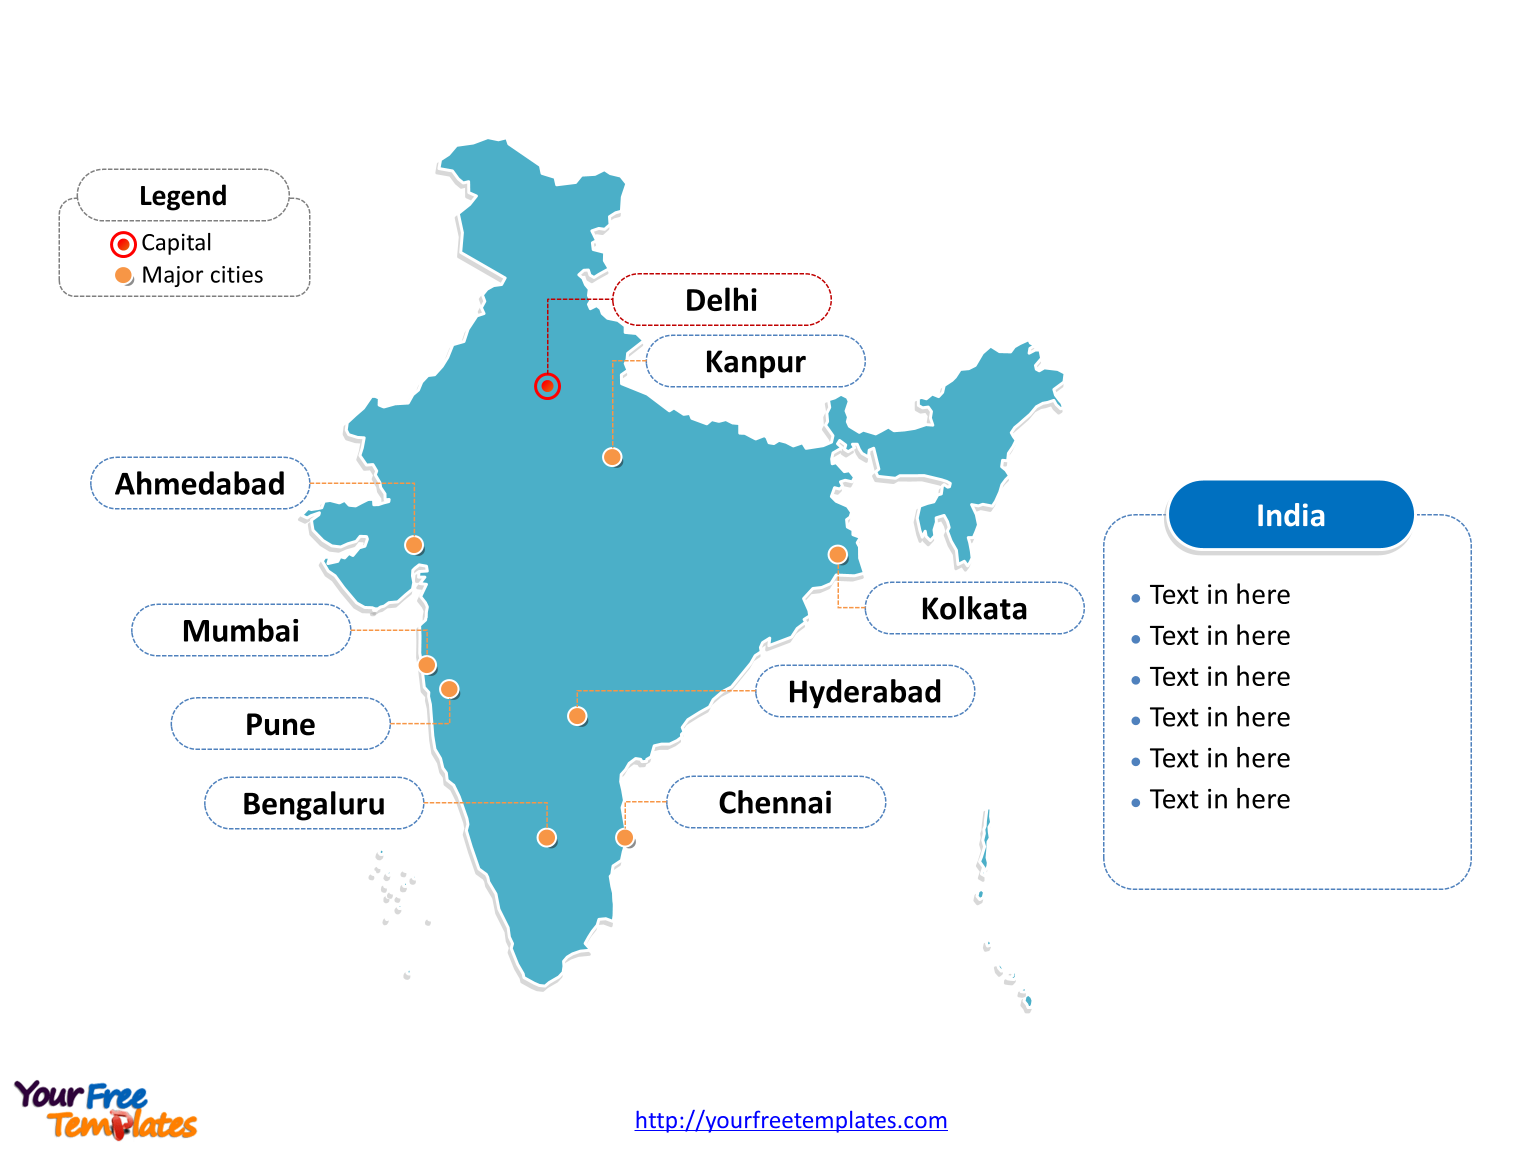 India Editable Map Of Outline Labeled With Cities